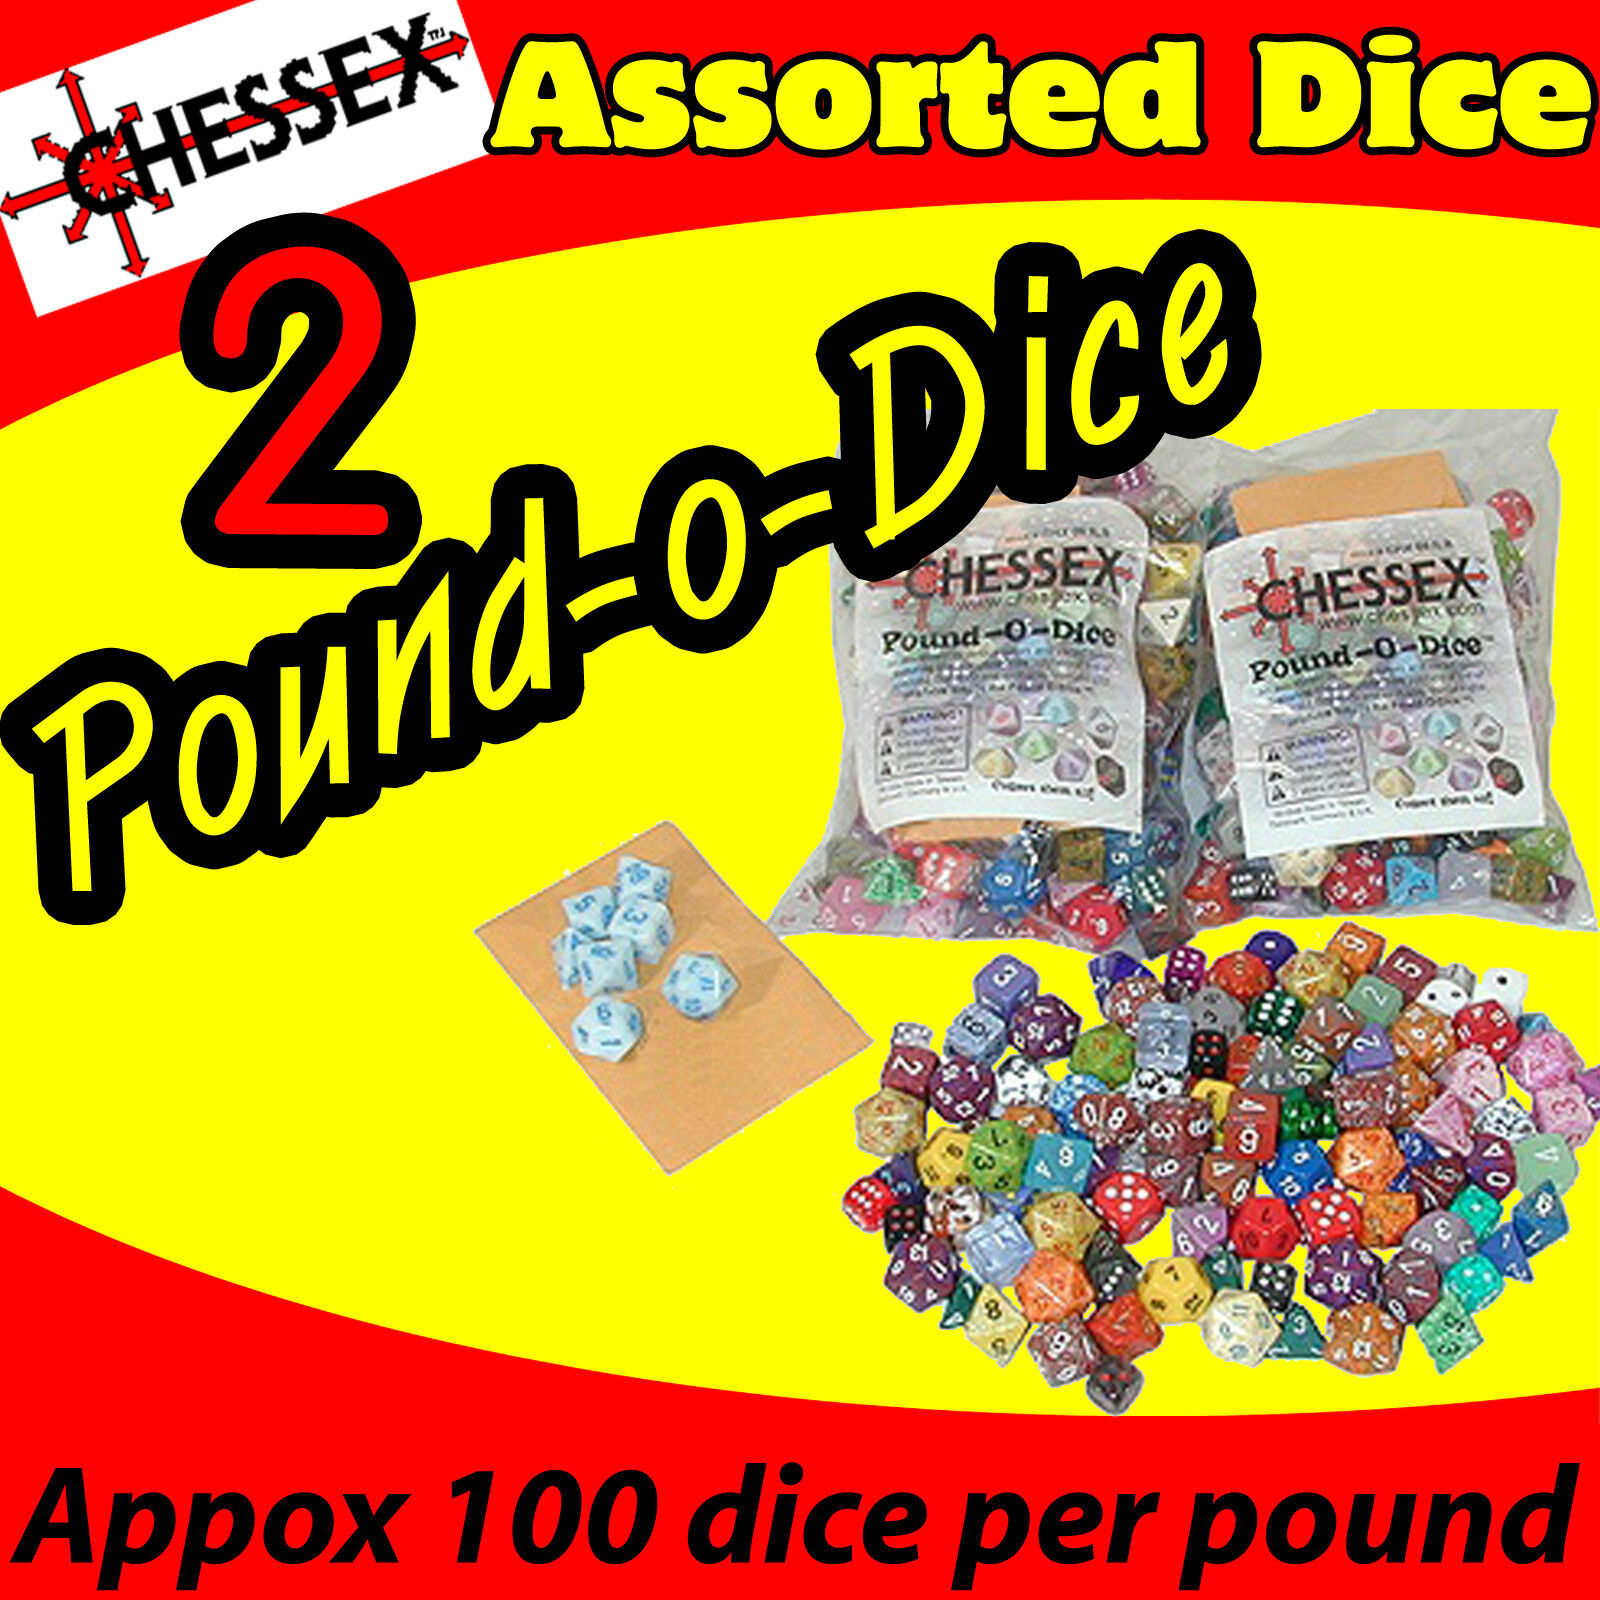 1 Pound Of Dice Bag Chessex Game Assorted Ad&d Role Playing Collect Chx001lb-1 Toys